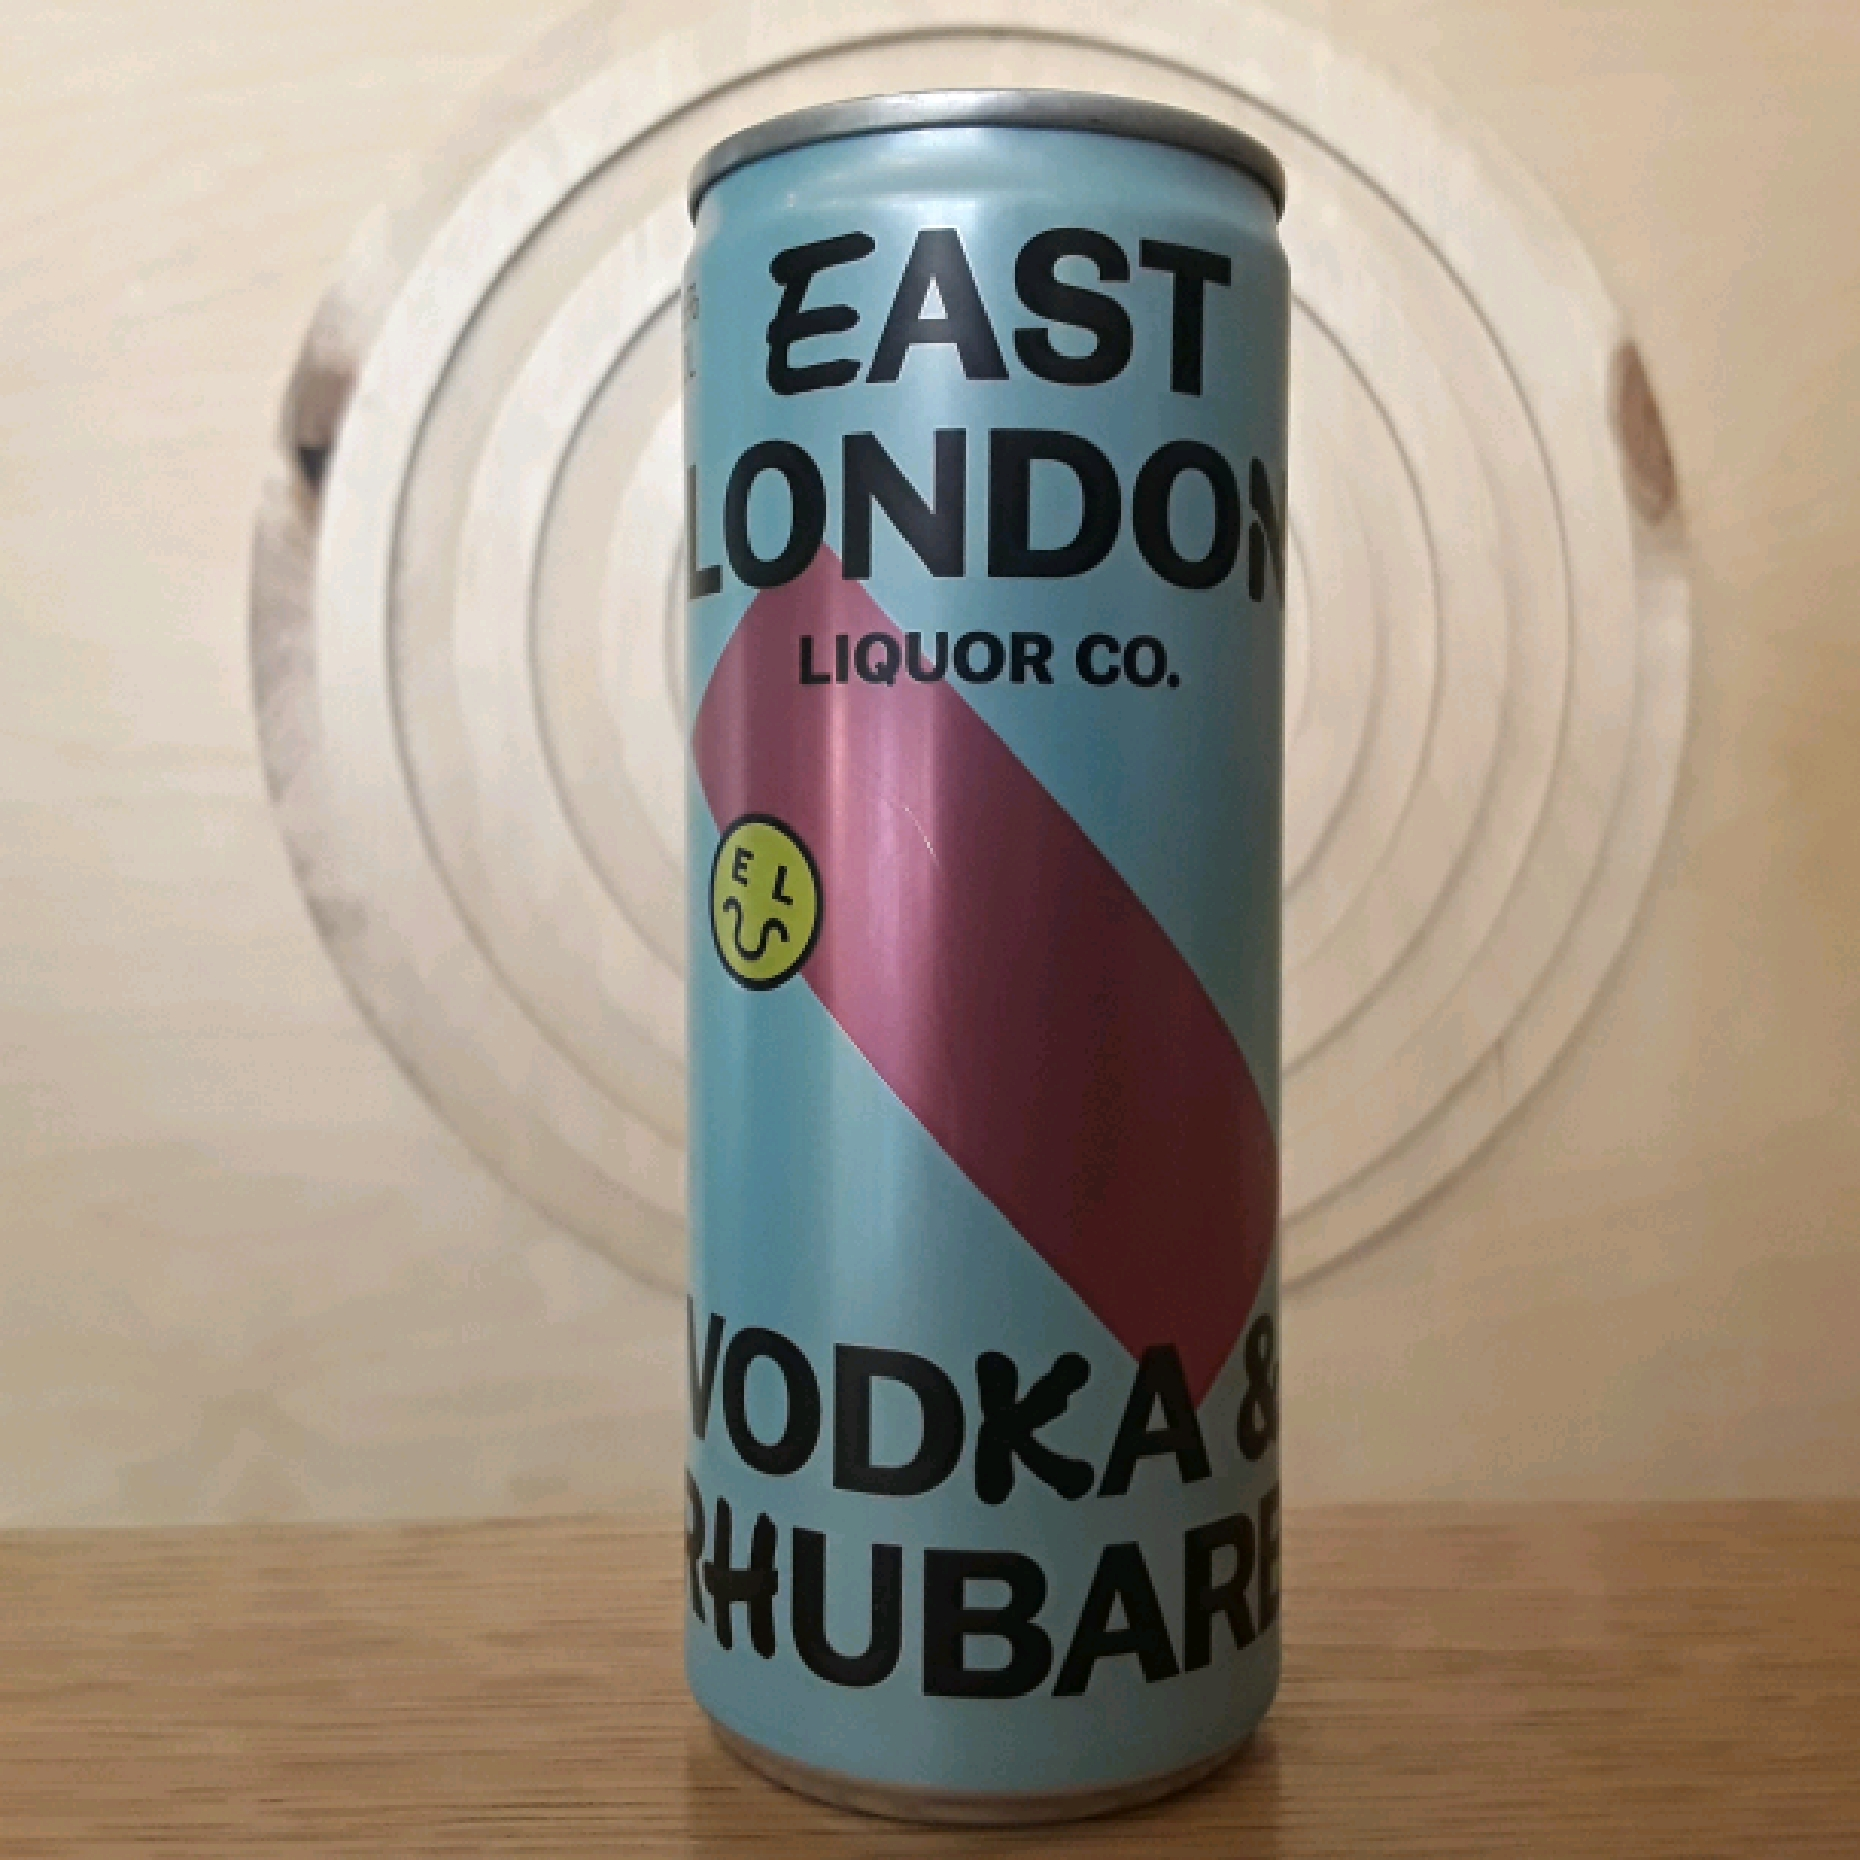 East London Liquor Co Vodka & Rhubarb